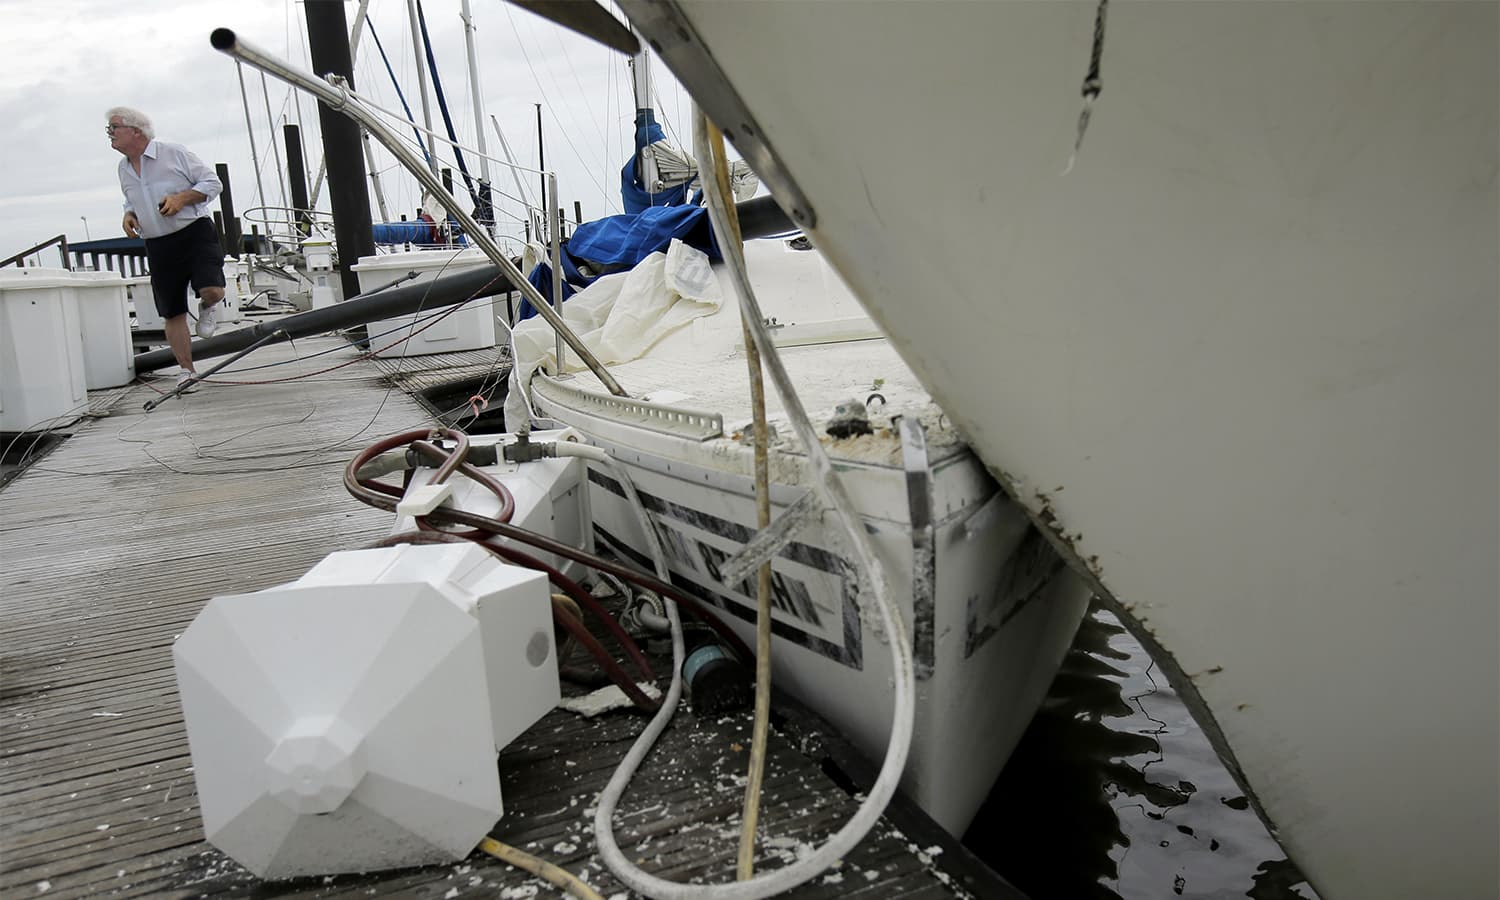 A resident looks at boats damaged by Hurricane Harvey. — AP